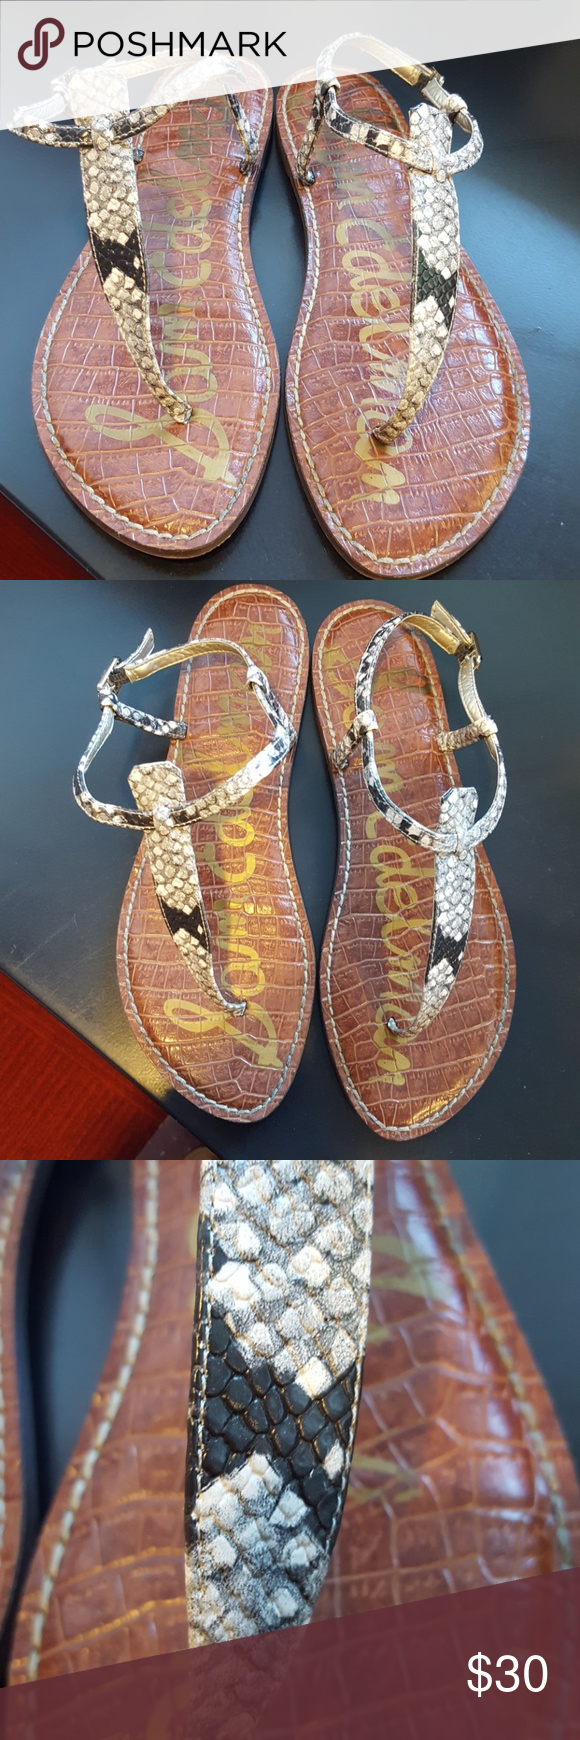 b5bf54ff4c5959 Sam Edelman Gigi Thong Sandal Putty Snake Size 9 Ankle strap Closure buckle  Toe  open Condition is good Sam Edelman Shoes Sandals